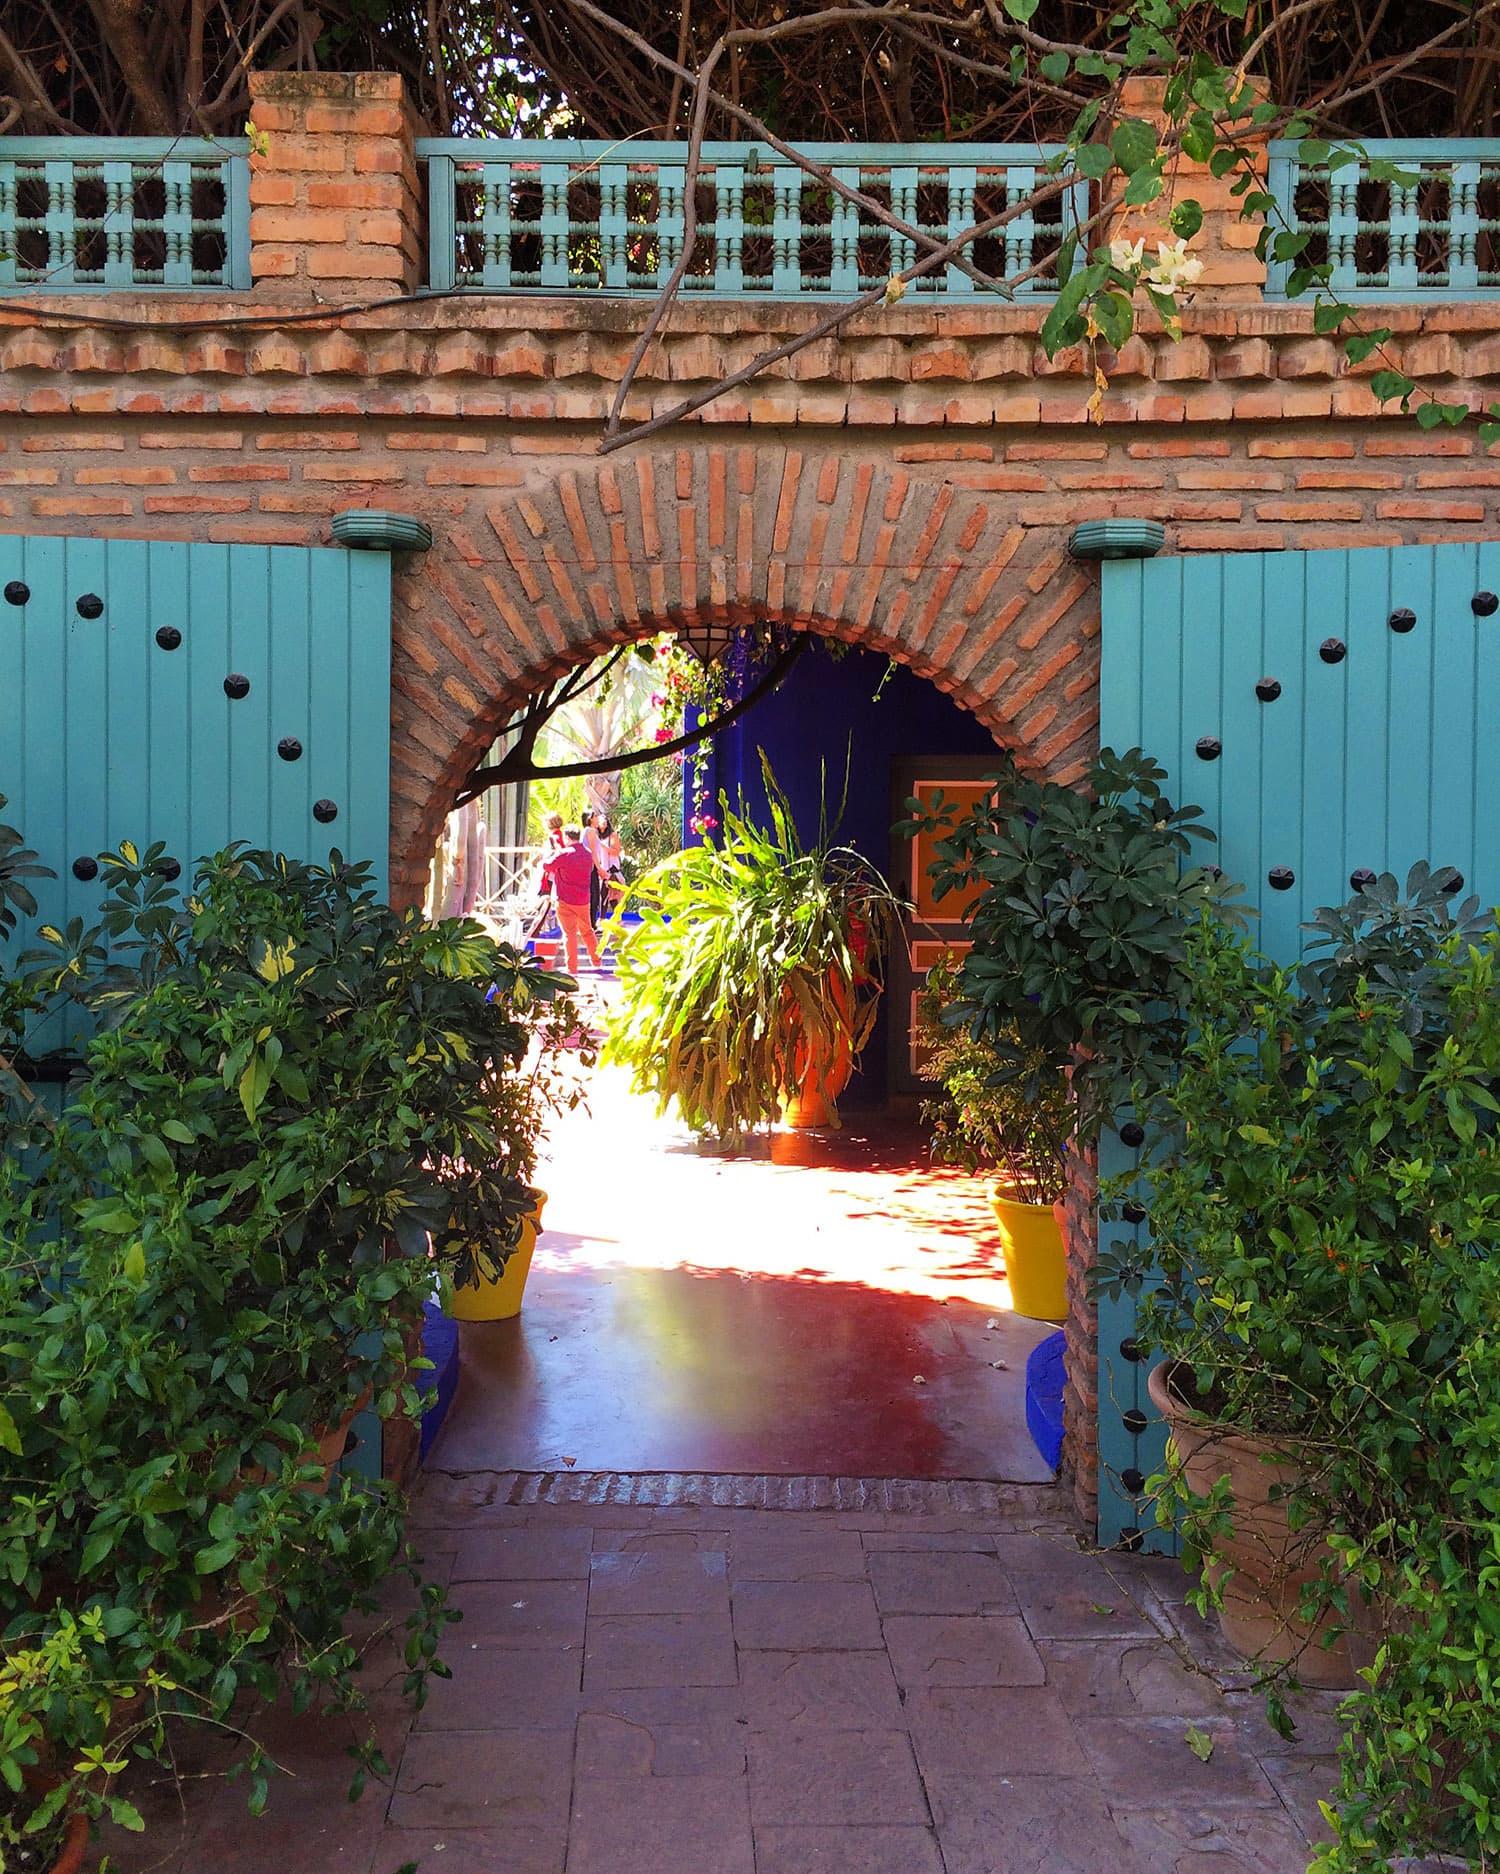 The entrance of the cafe at Jardin Majorelle.